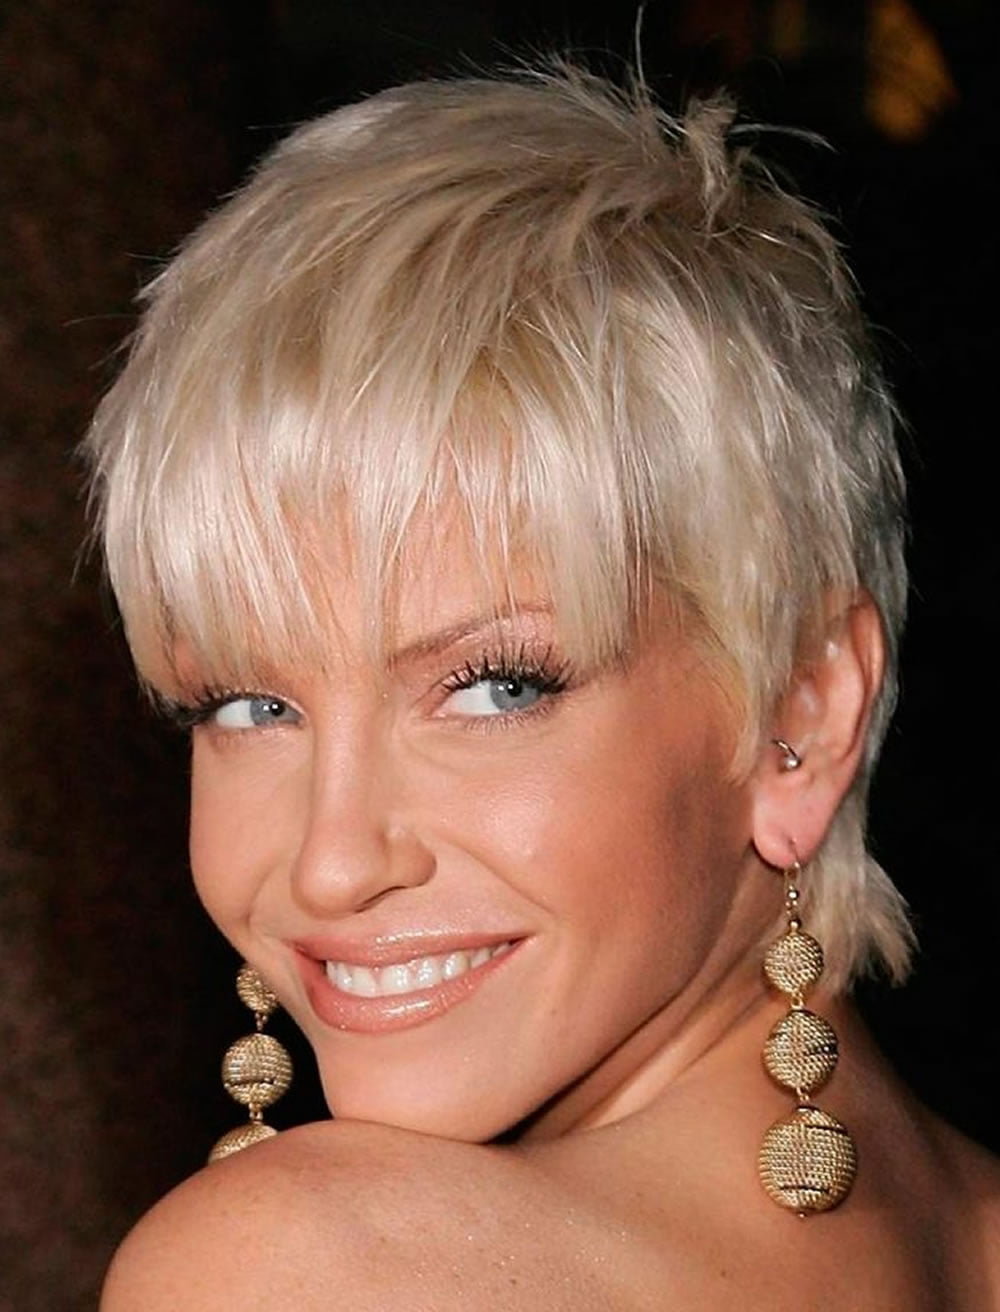 25 Unique Pixie Haircuts For Girls 2018-2019 U2013 Latest Pixie Cut Ideas U2013 HAIRSTYLES